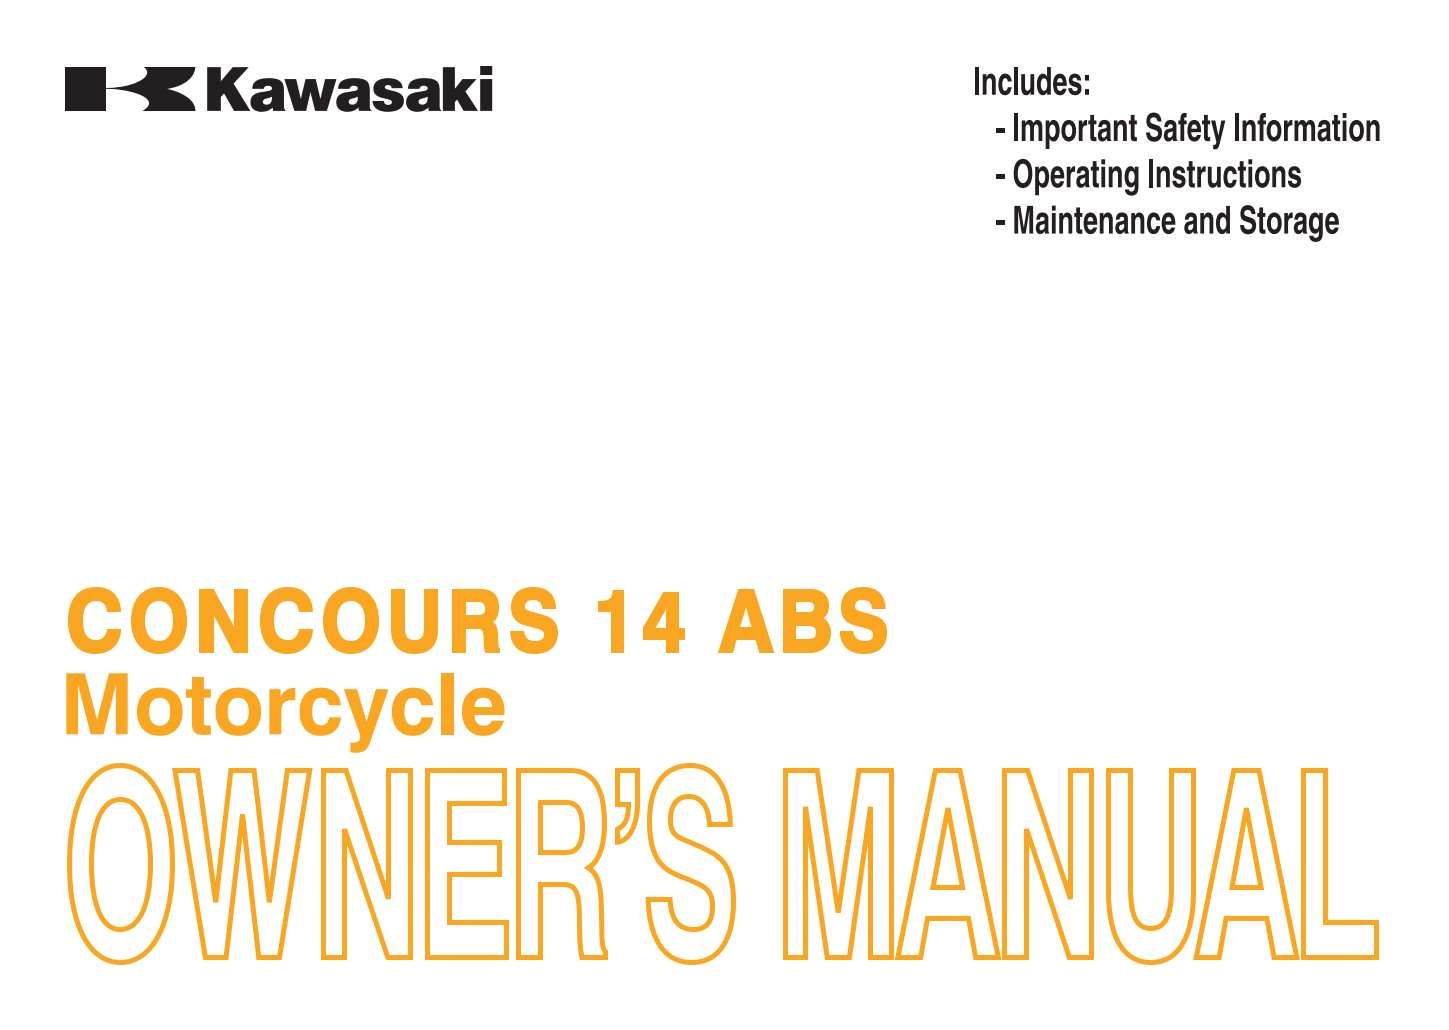 Kawasaki Concours 14 Abs 2013 Owner S Manual Has Been Published On Procarmanuals Com Https Procarmanuals Com Kawasaki Concours Owners Manuals Manual Kawasaki